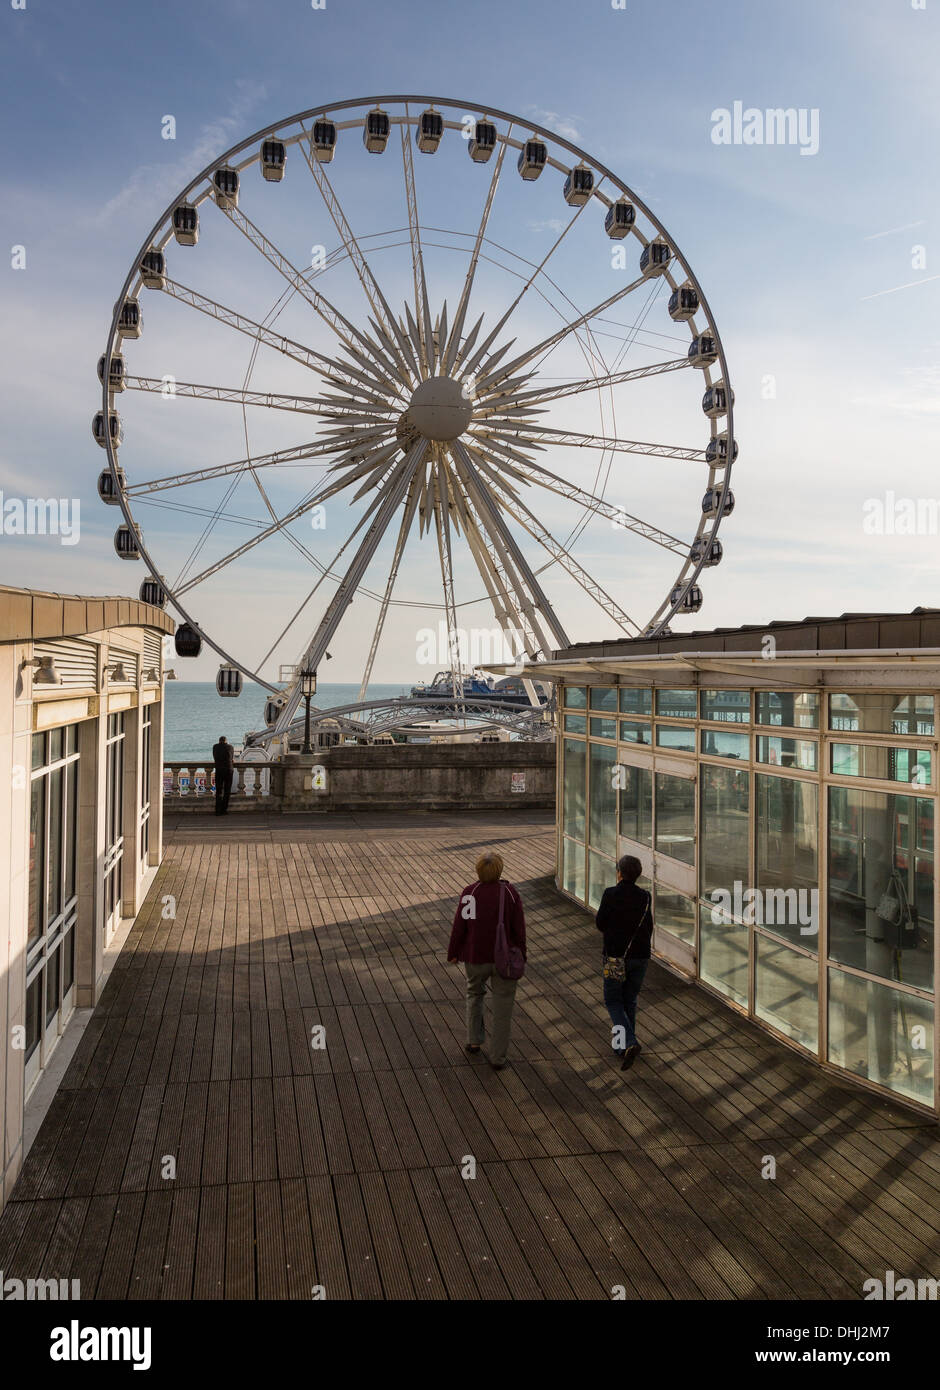 Brighton Wheel, Brighton seafront, Sussex, UK in the late afternoon light - Stock Image